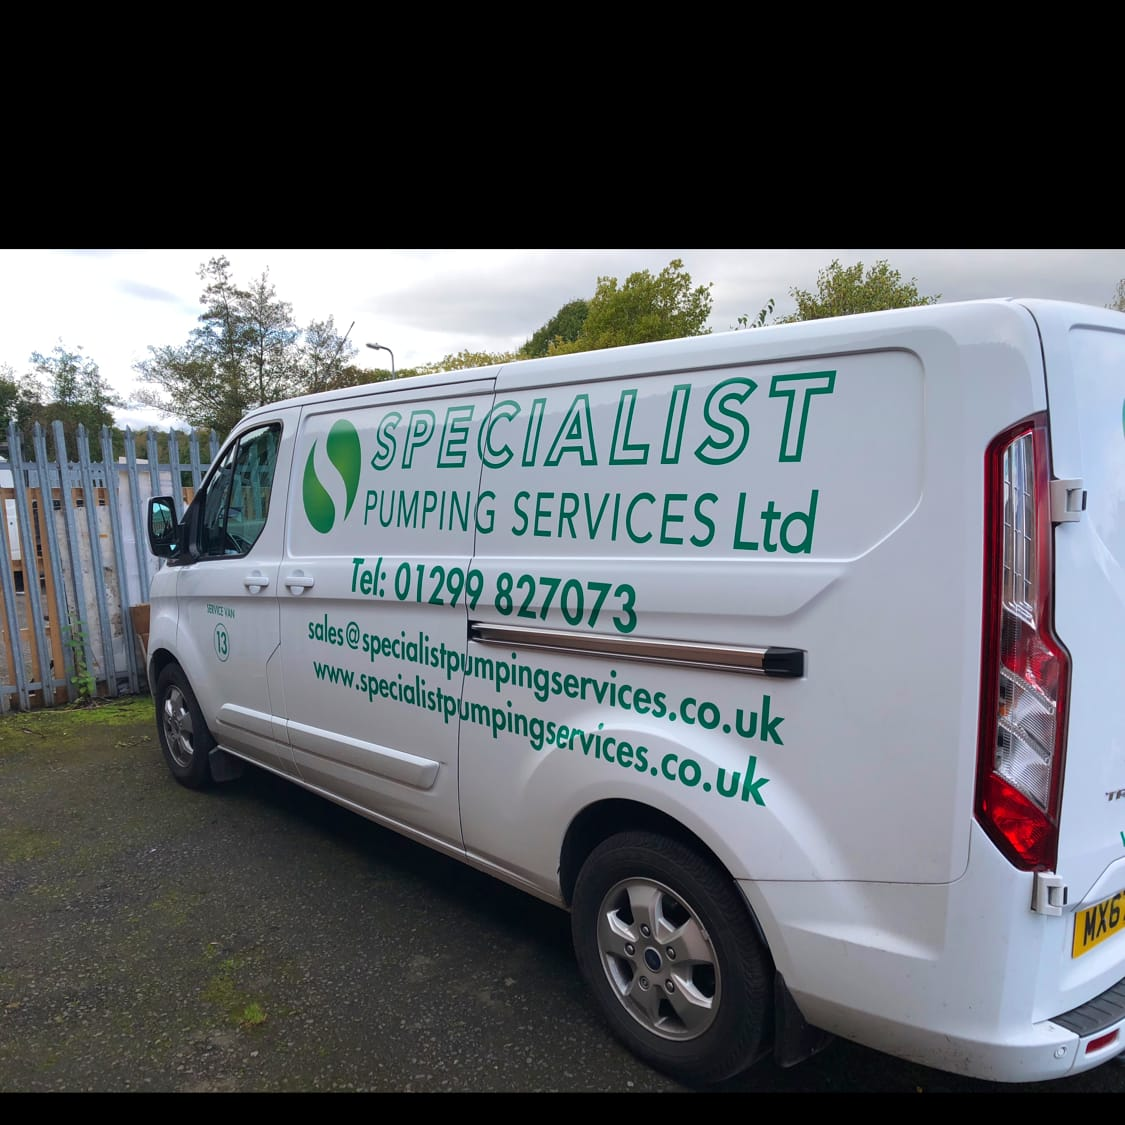 Specialist Pumping Services Ltd Stourport-On-Severn 01299 827073